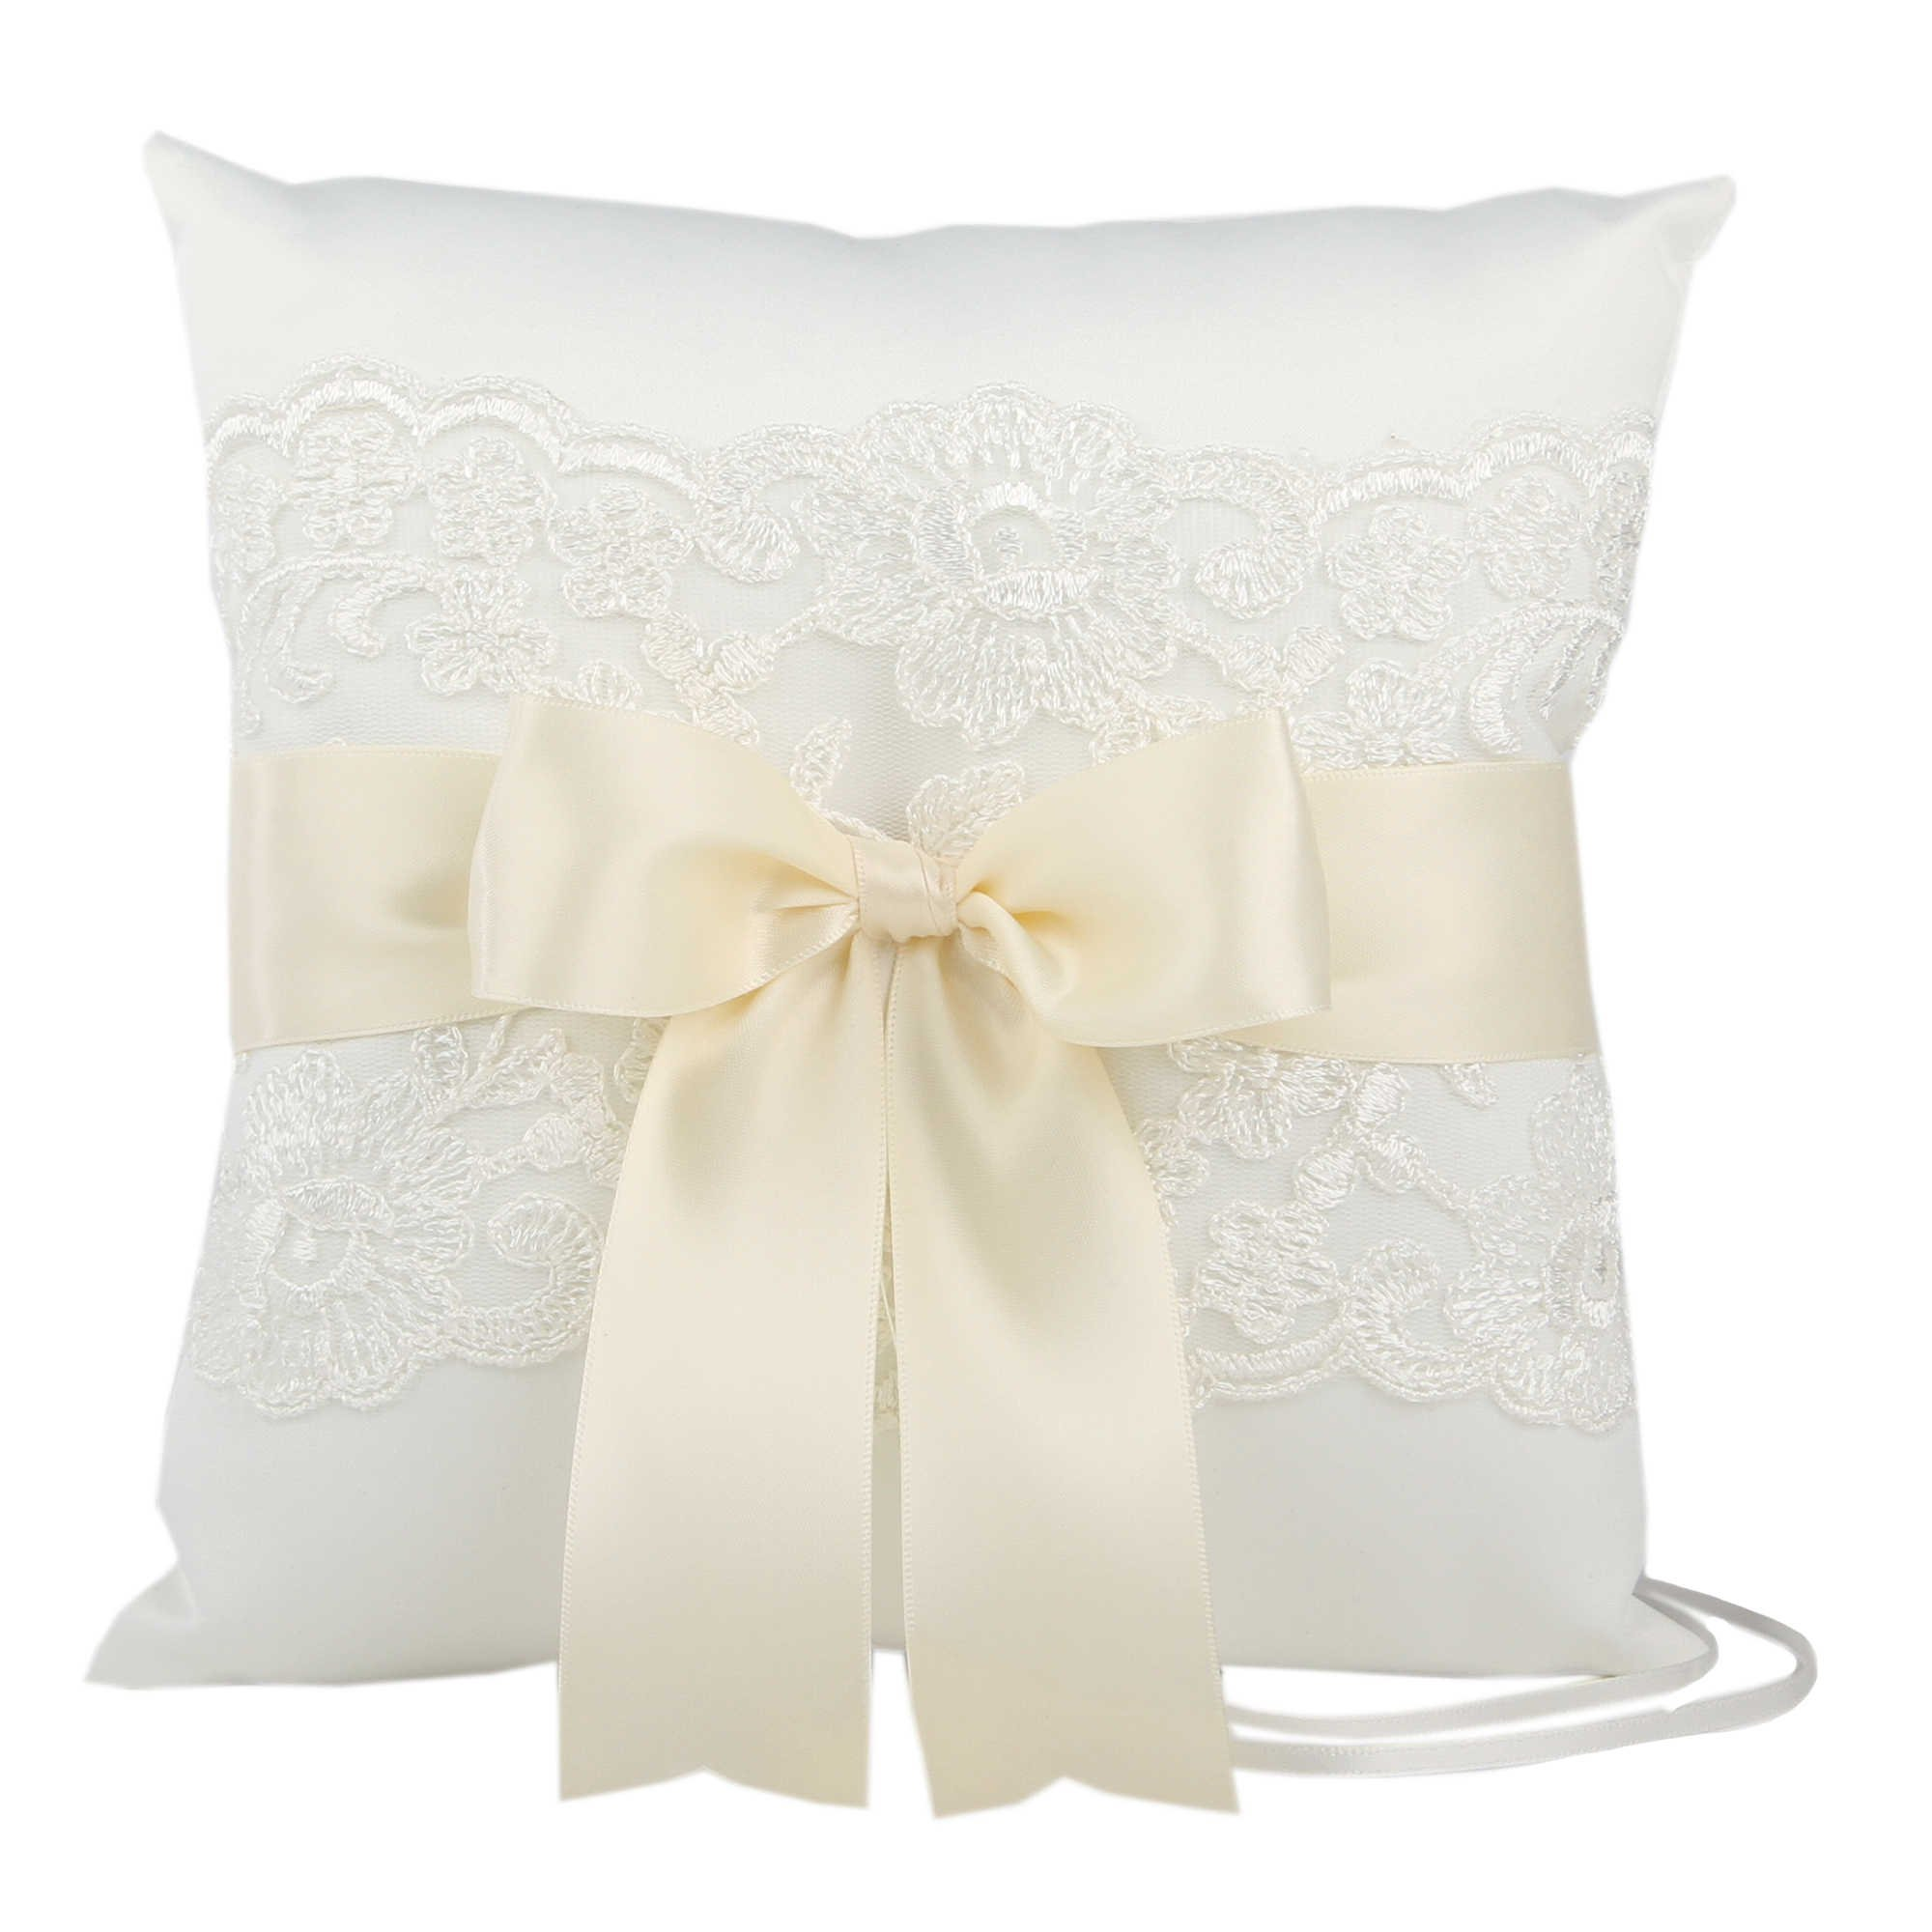 Bridal Ivory Lace & Satin Ribbon Wedding Ceremony Ring Bearer Pillow and Mini Favor LOVE Picture Frame